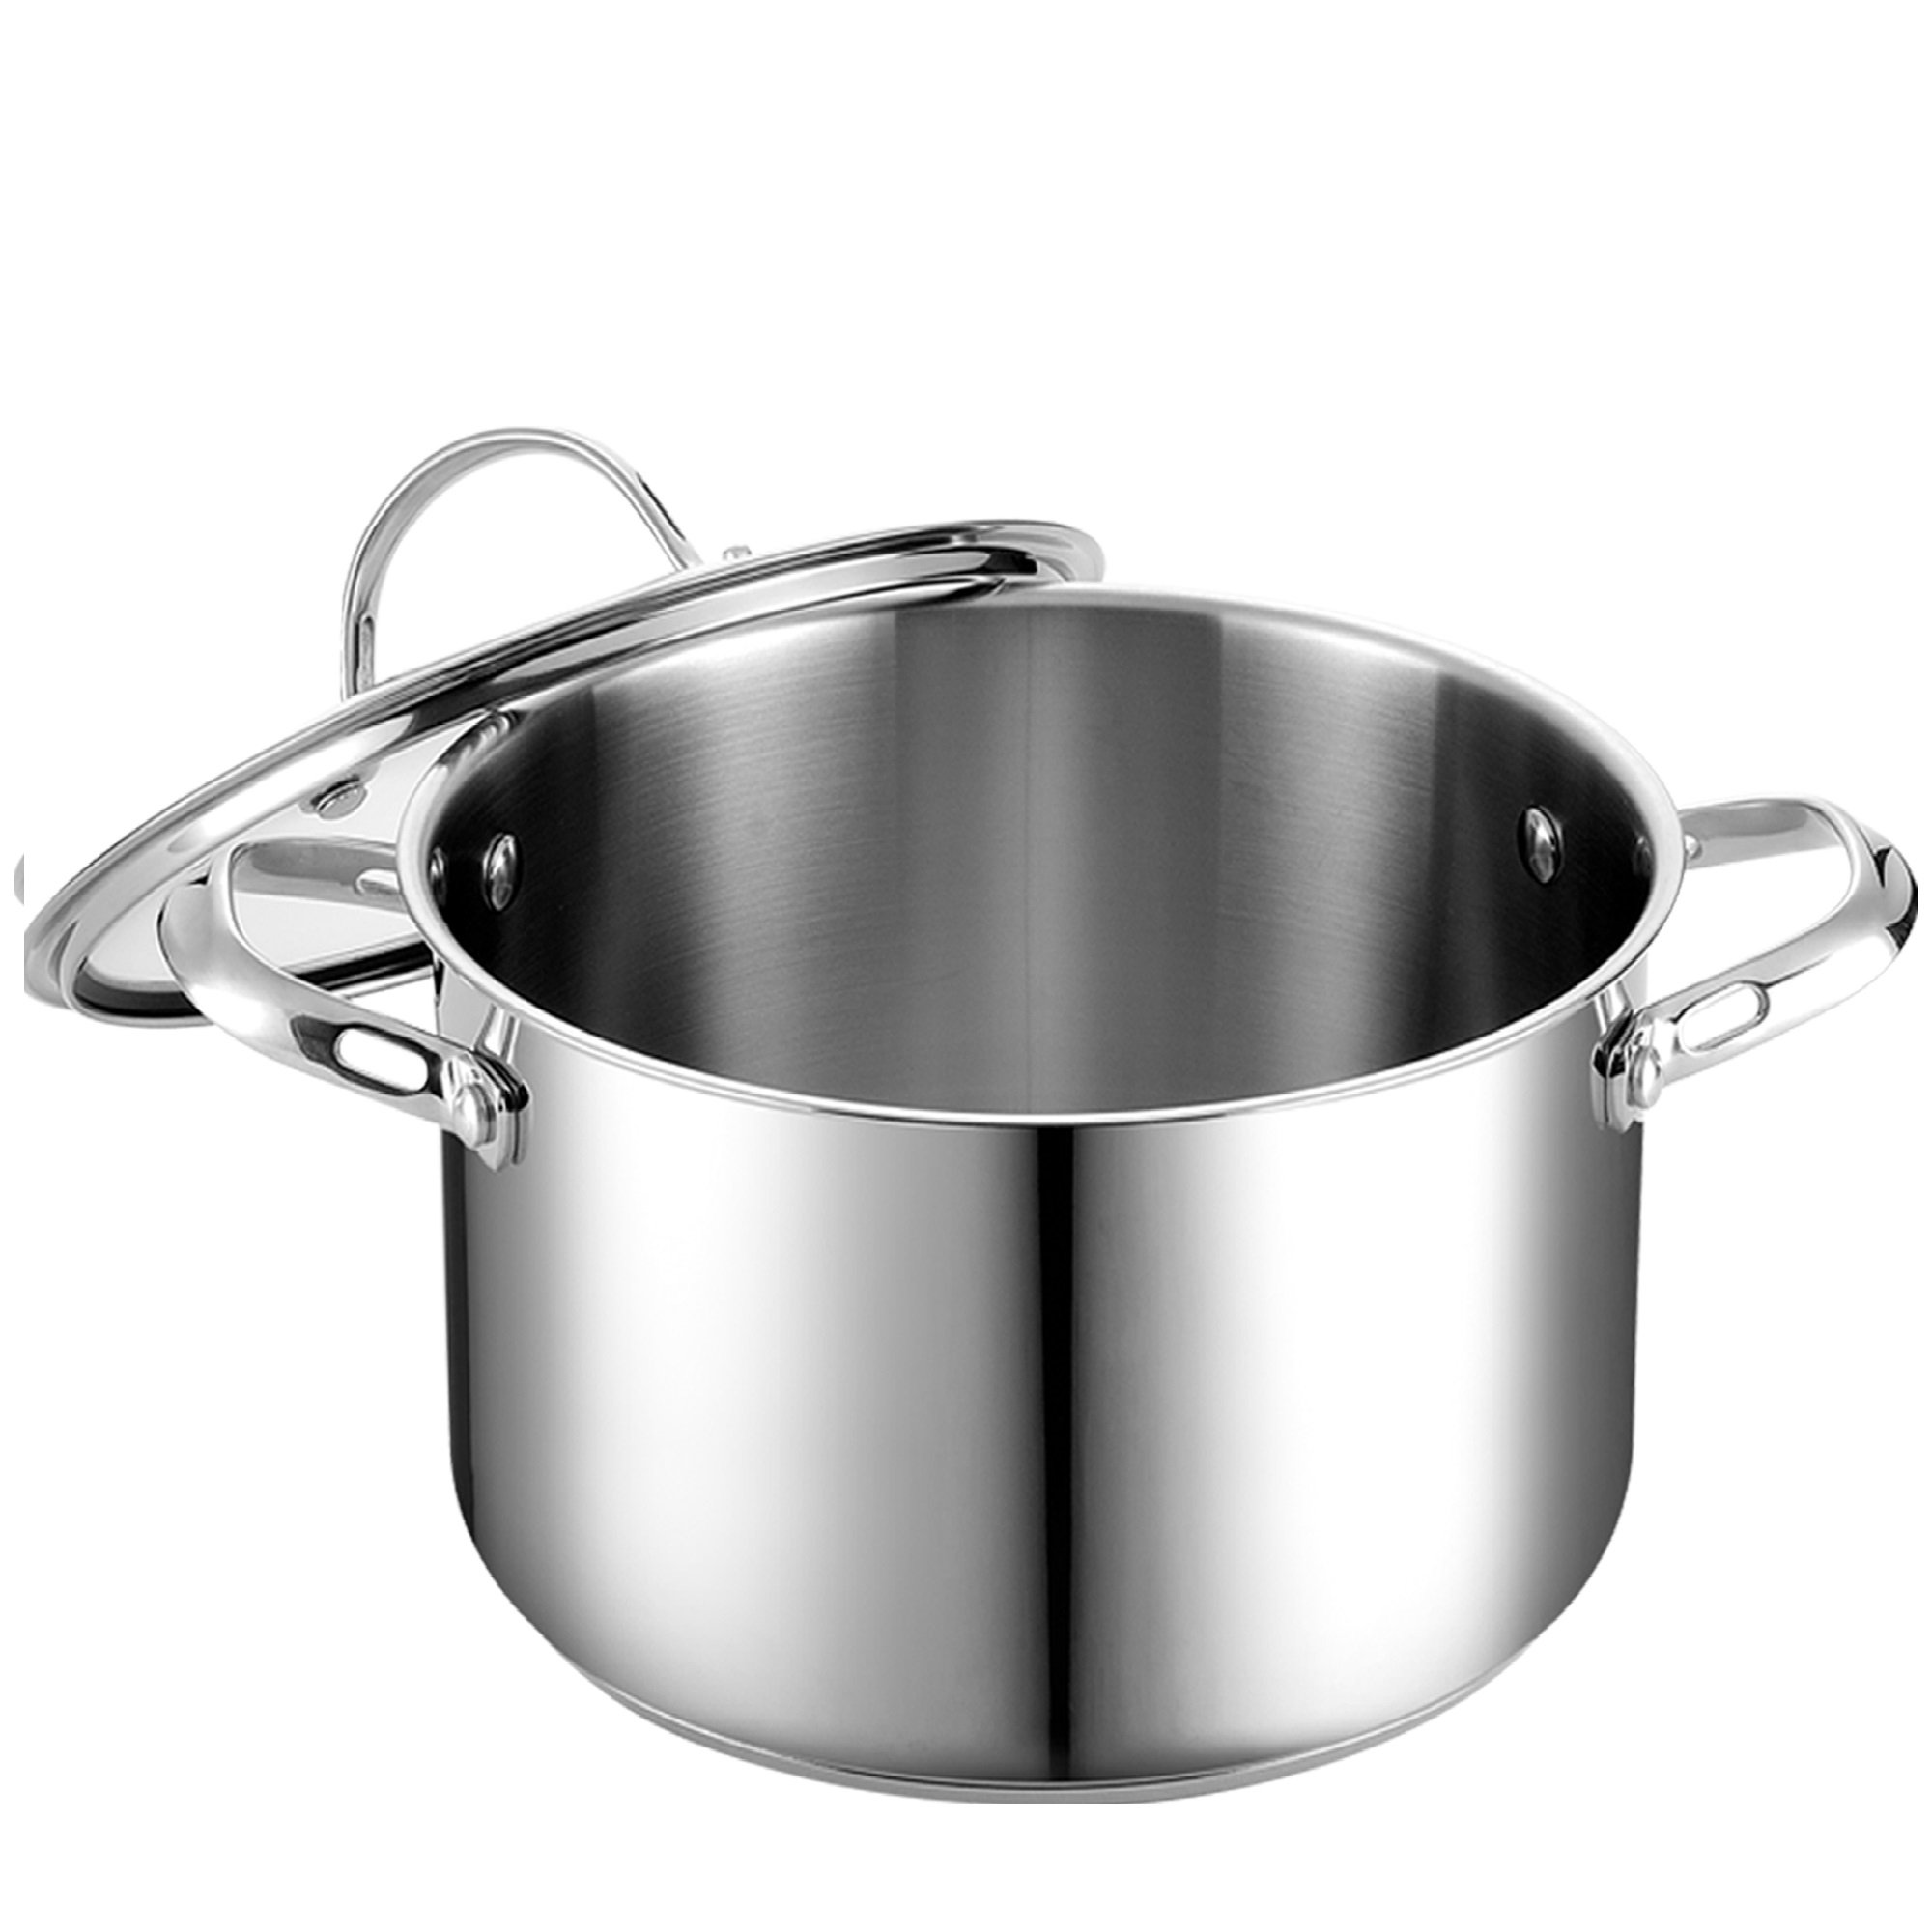 Cooks Standard 6-Quart Stainless Steel Stockpot with Lid by Cooks Standard (Image #2)